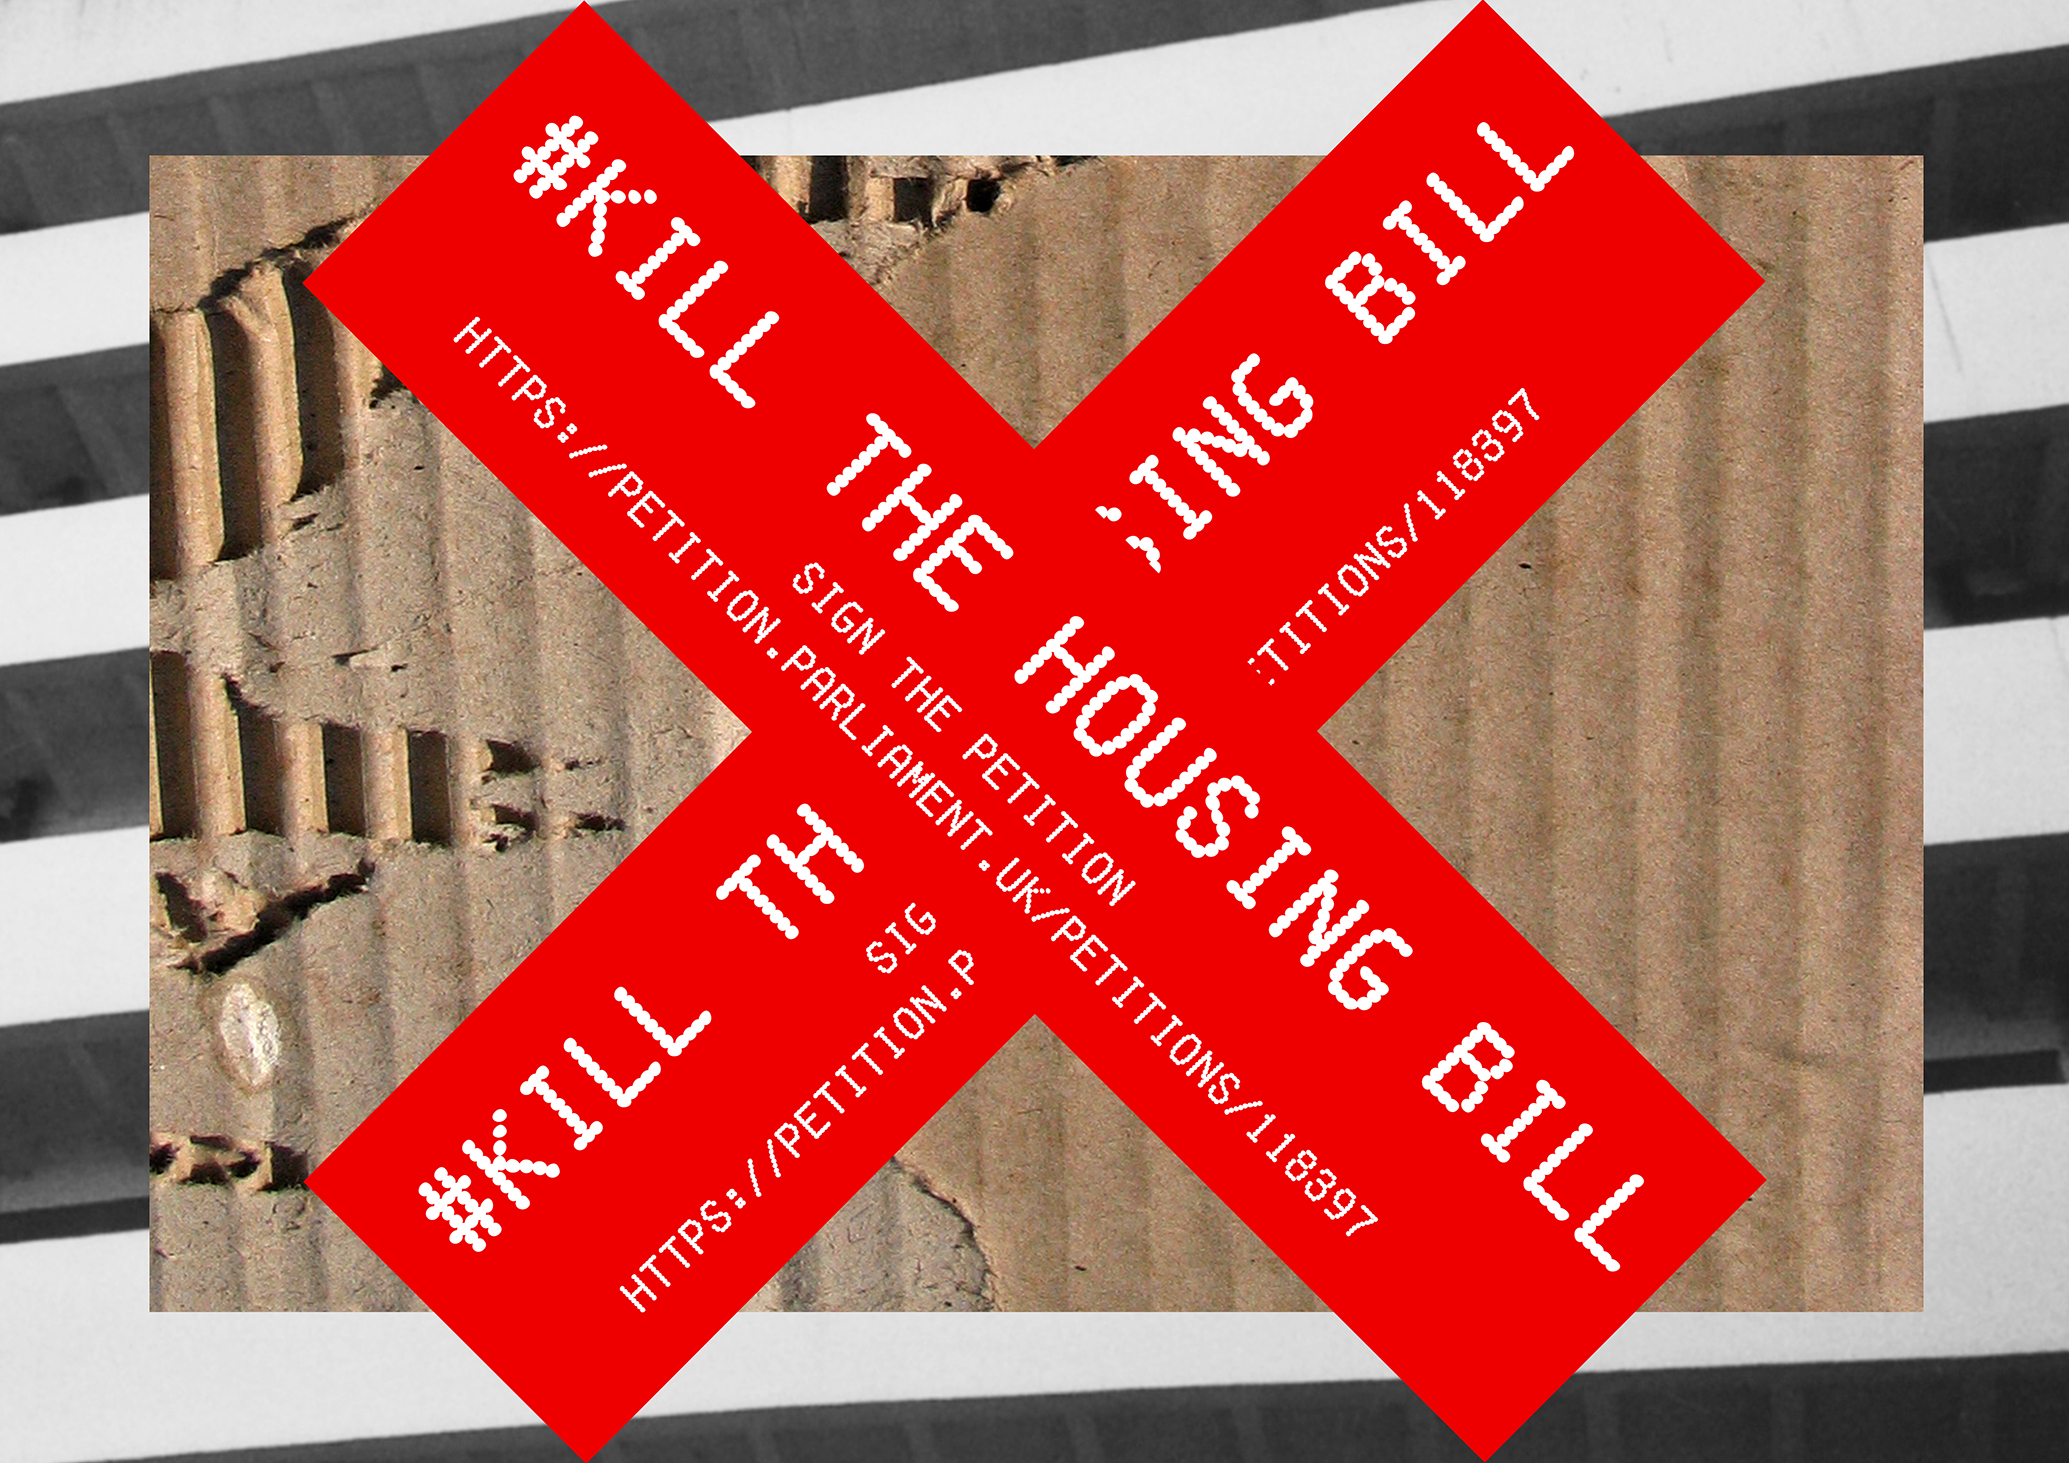 KILLTHEHOUSINGBILSNUFFCREATIVE2016-red-LR.jpg